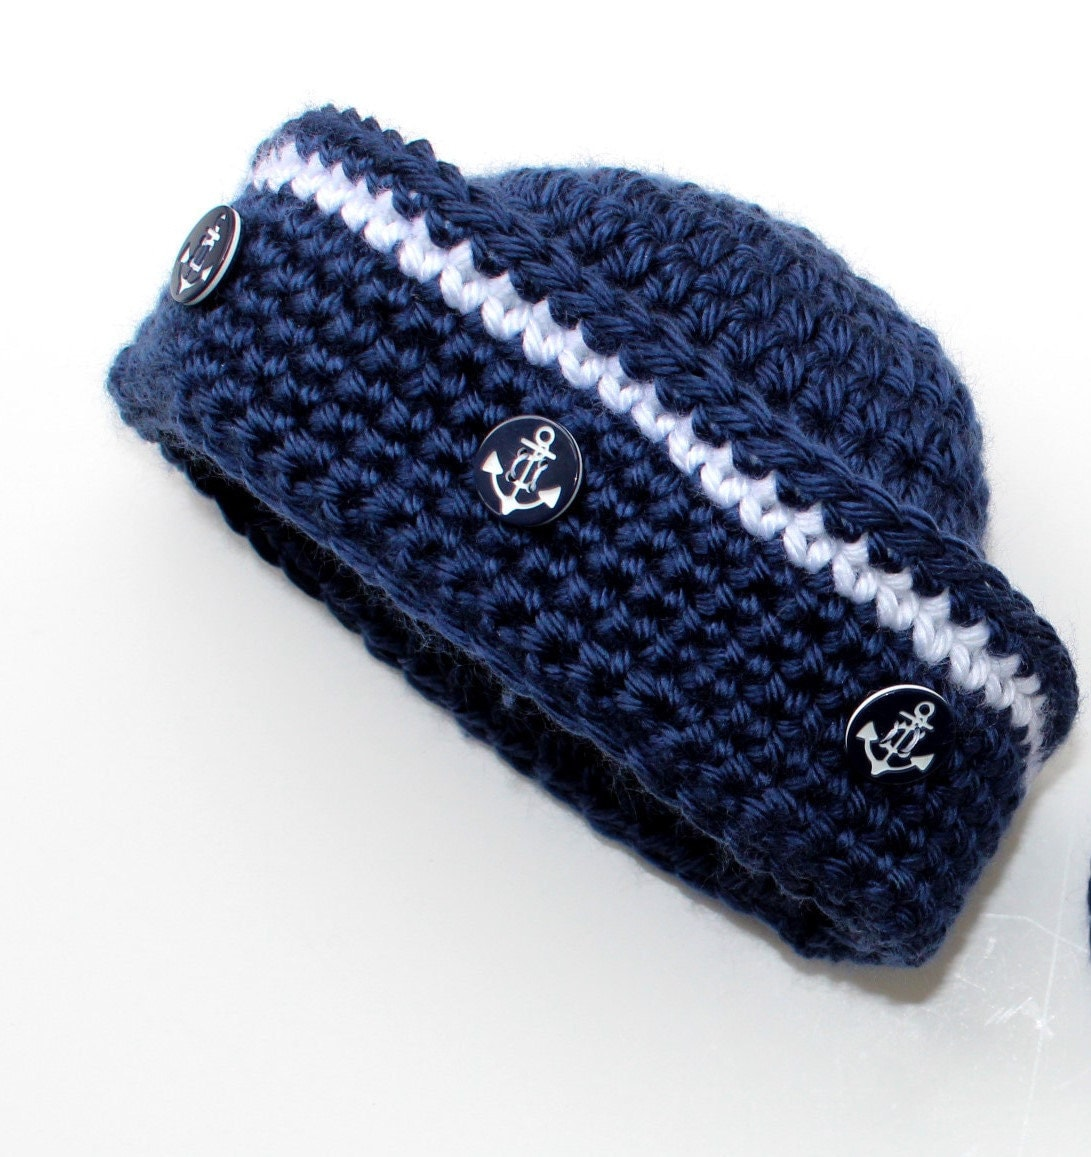 Crochet Pattern Sailor Hat : Crochet Sailor Hat Pattern Nautical Baby Boy Baby Girl